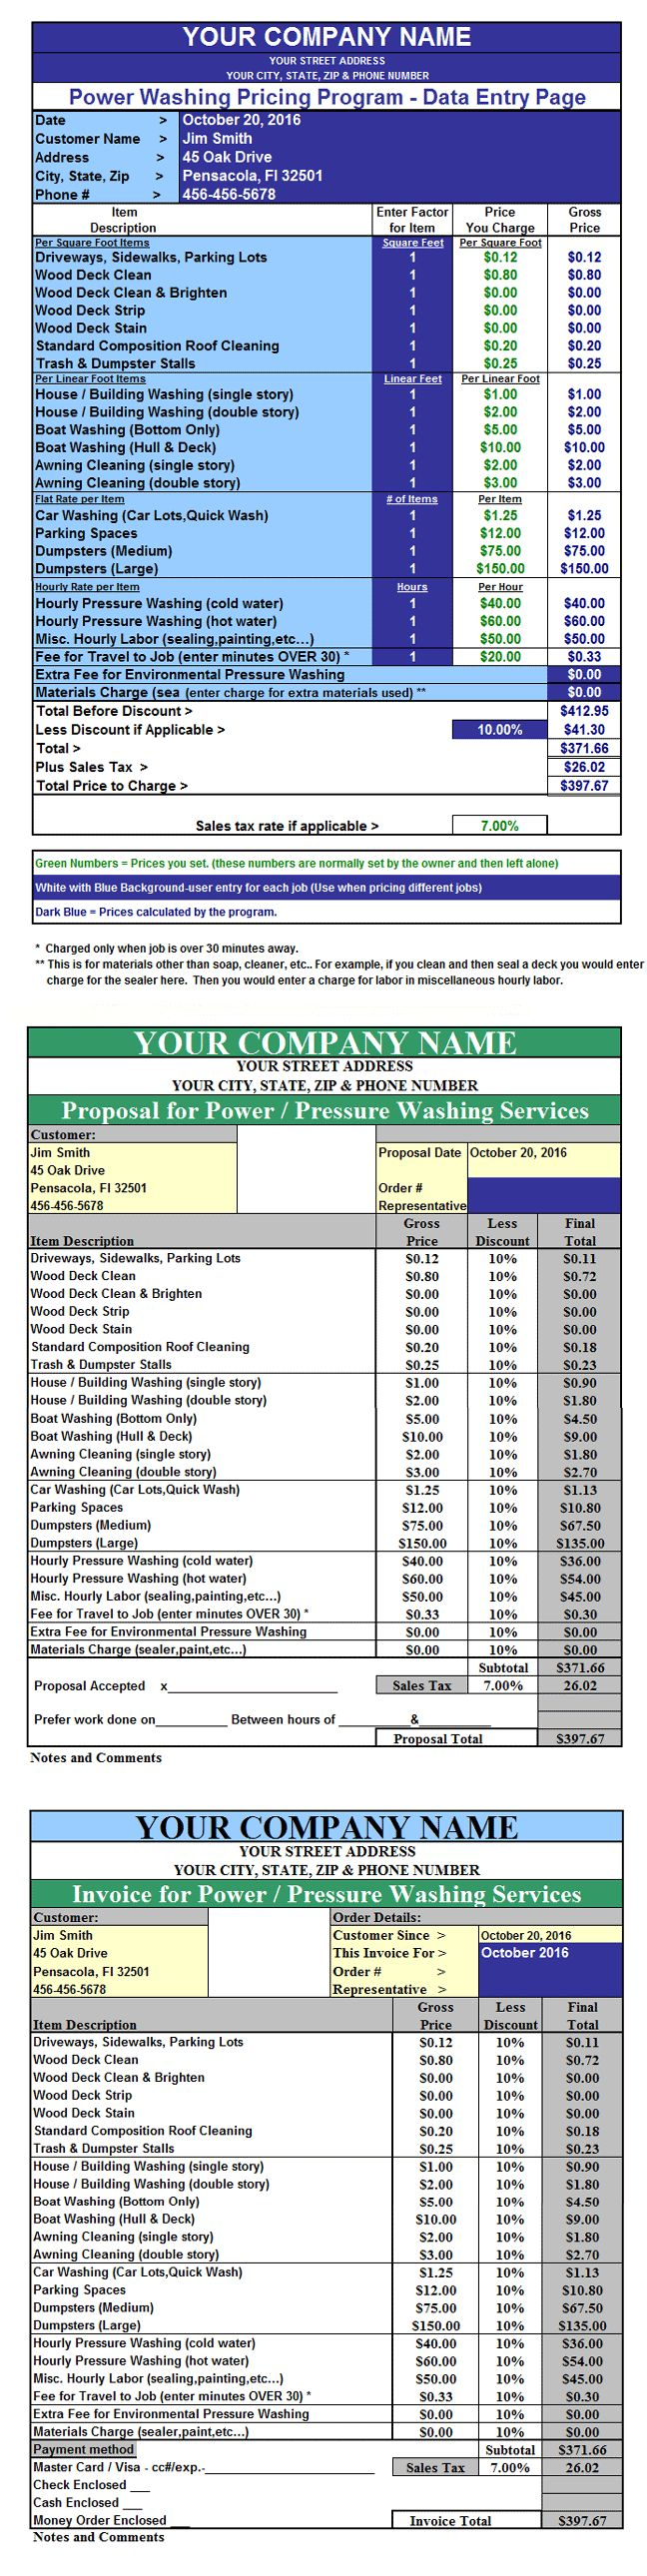 pressure washing invoicing quoting pricing program spreadsheet